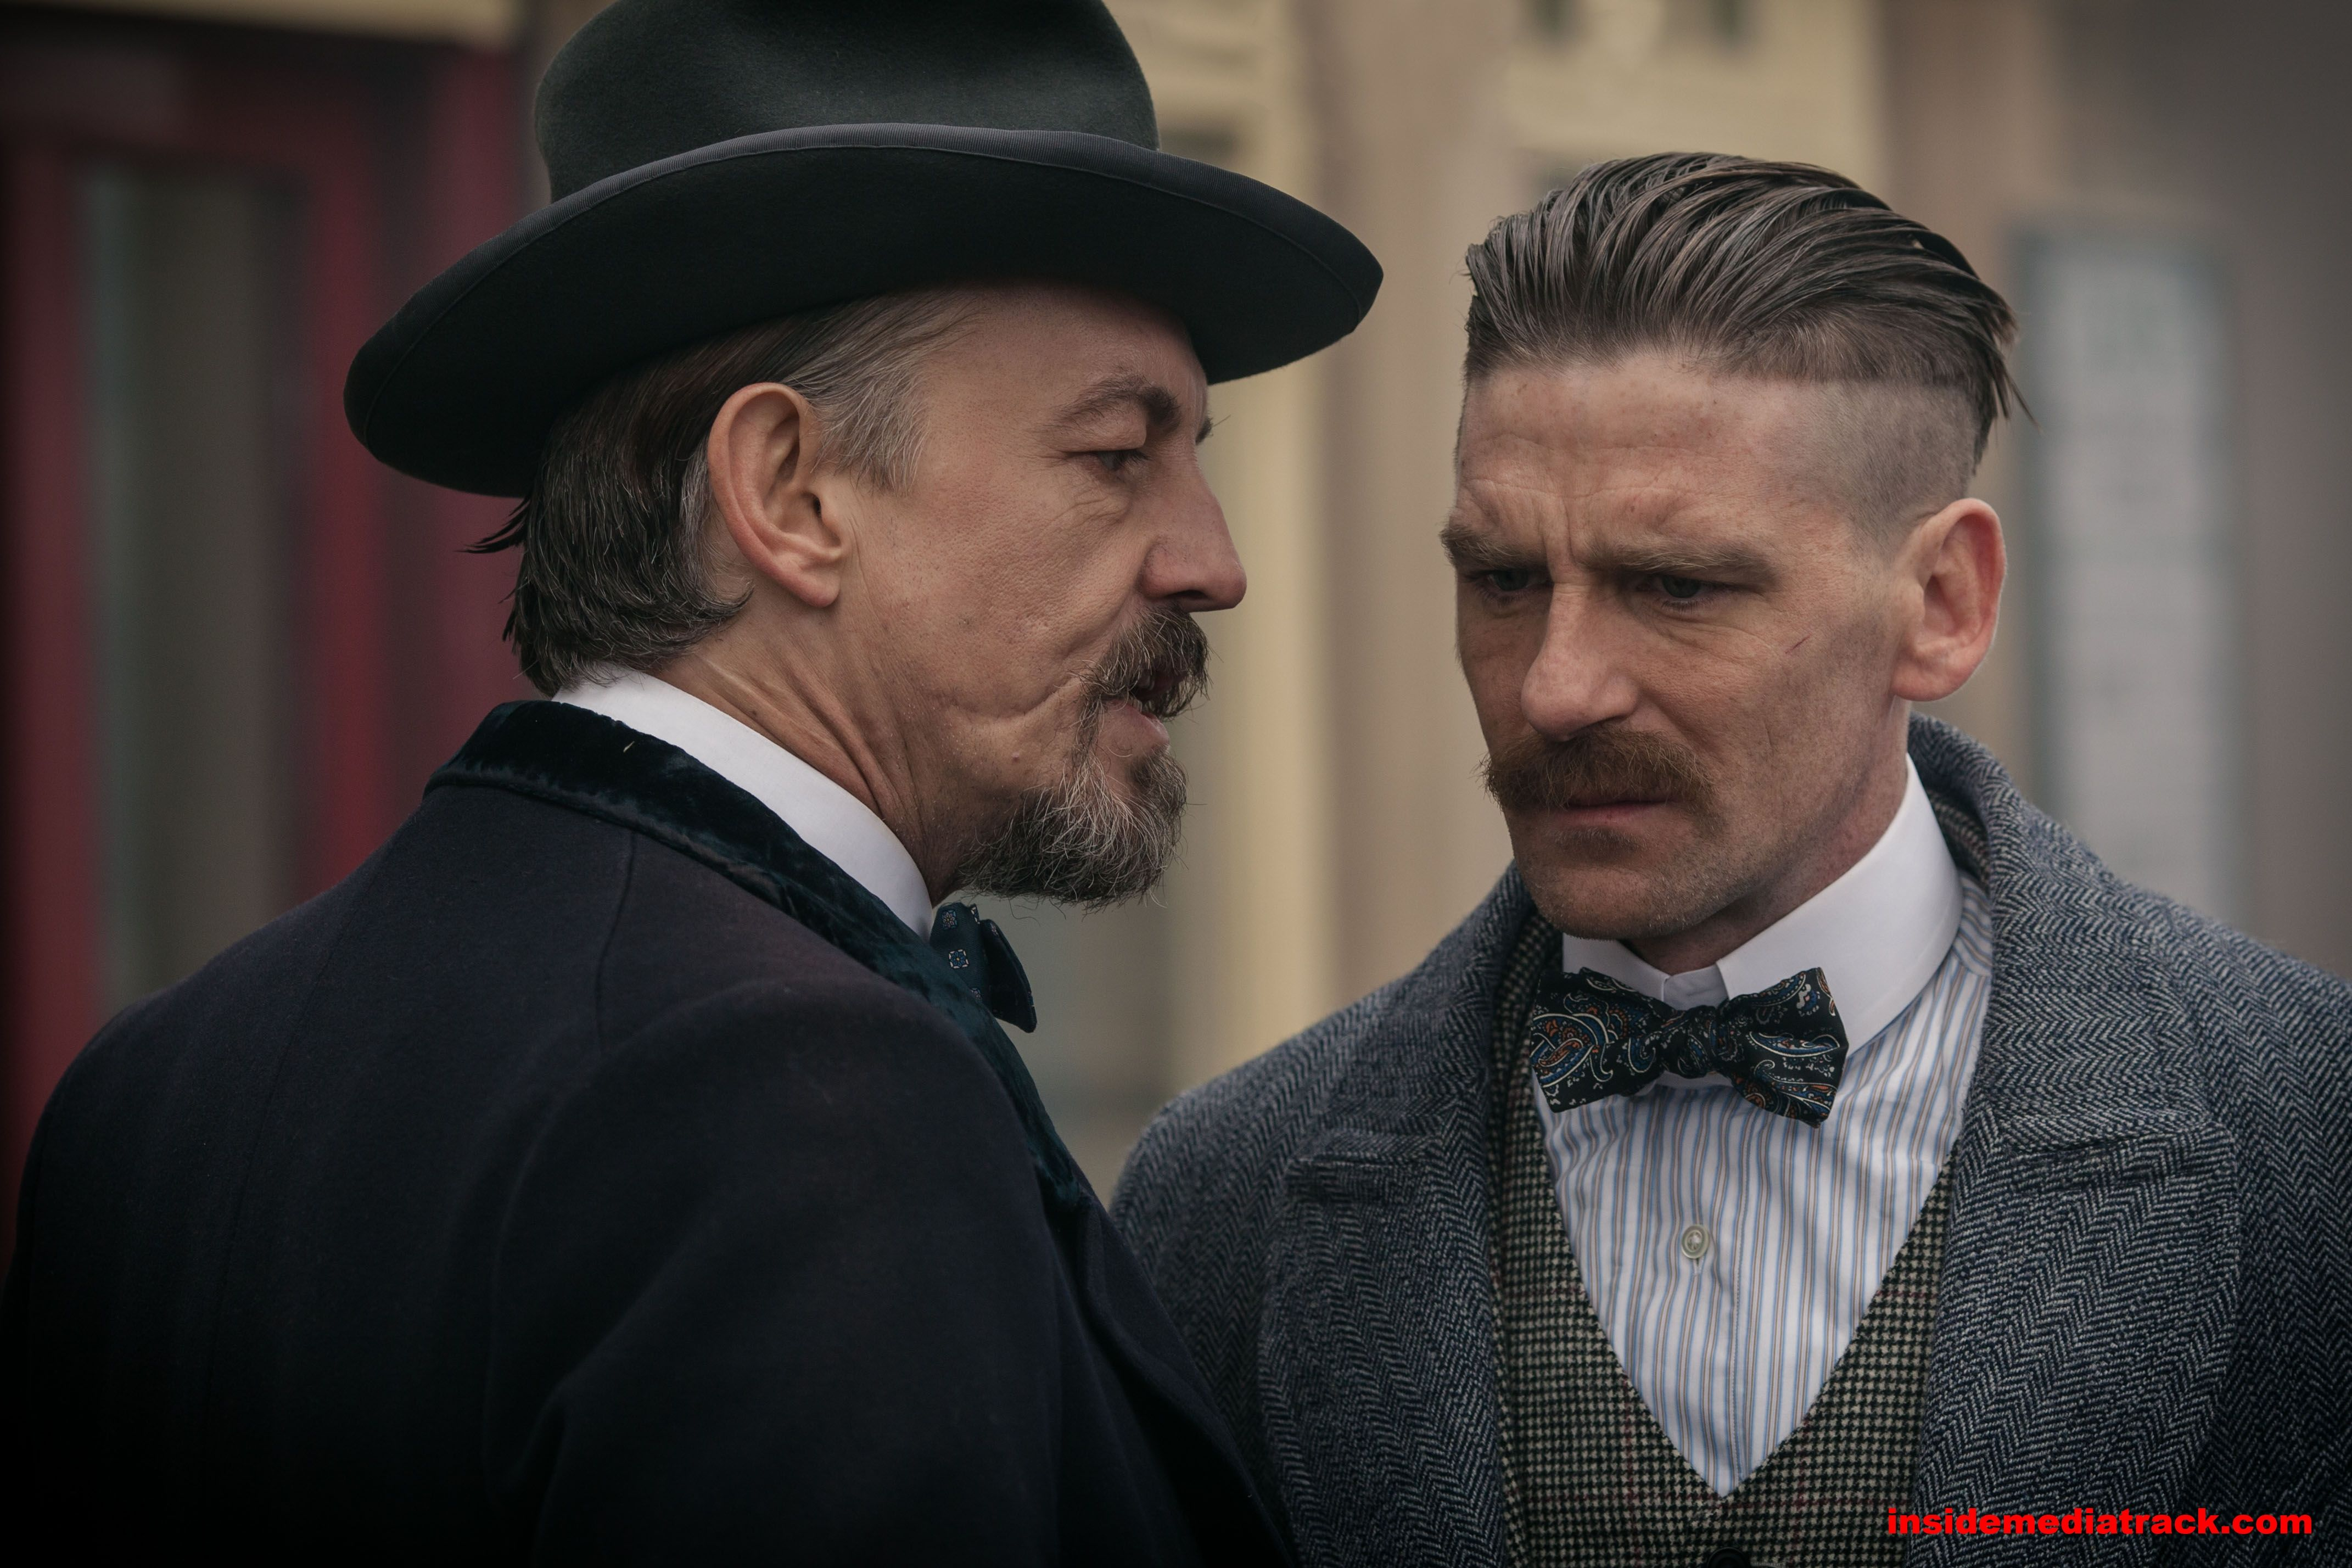 1000+ images about Peaky Blinders on Pinterest